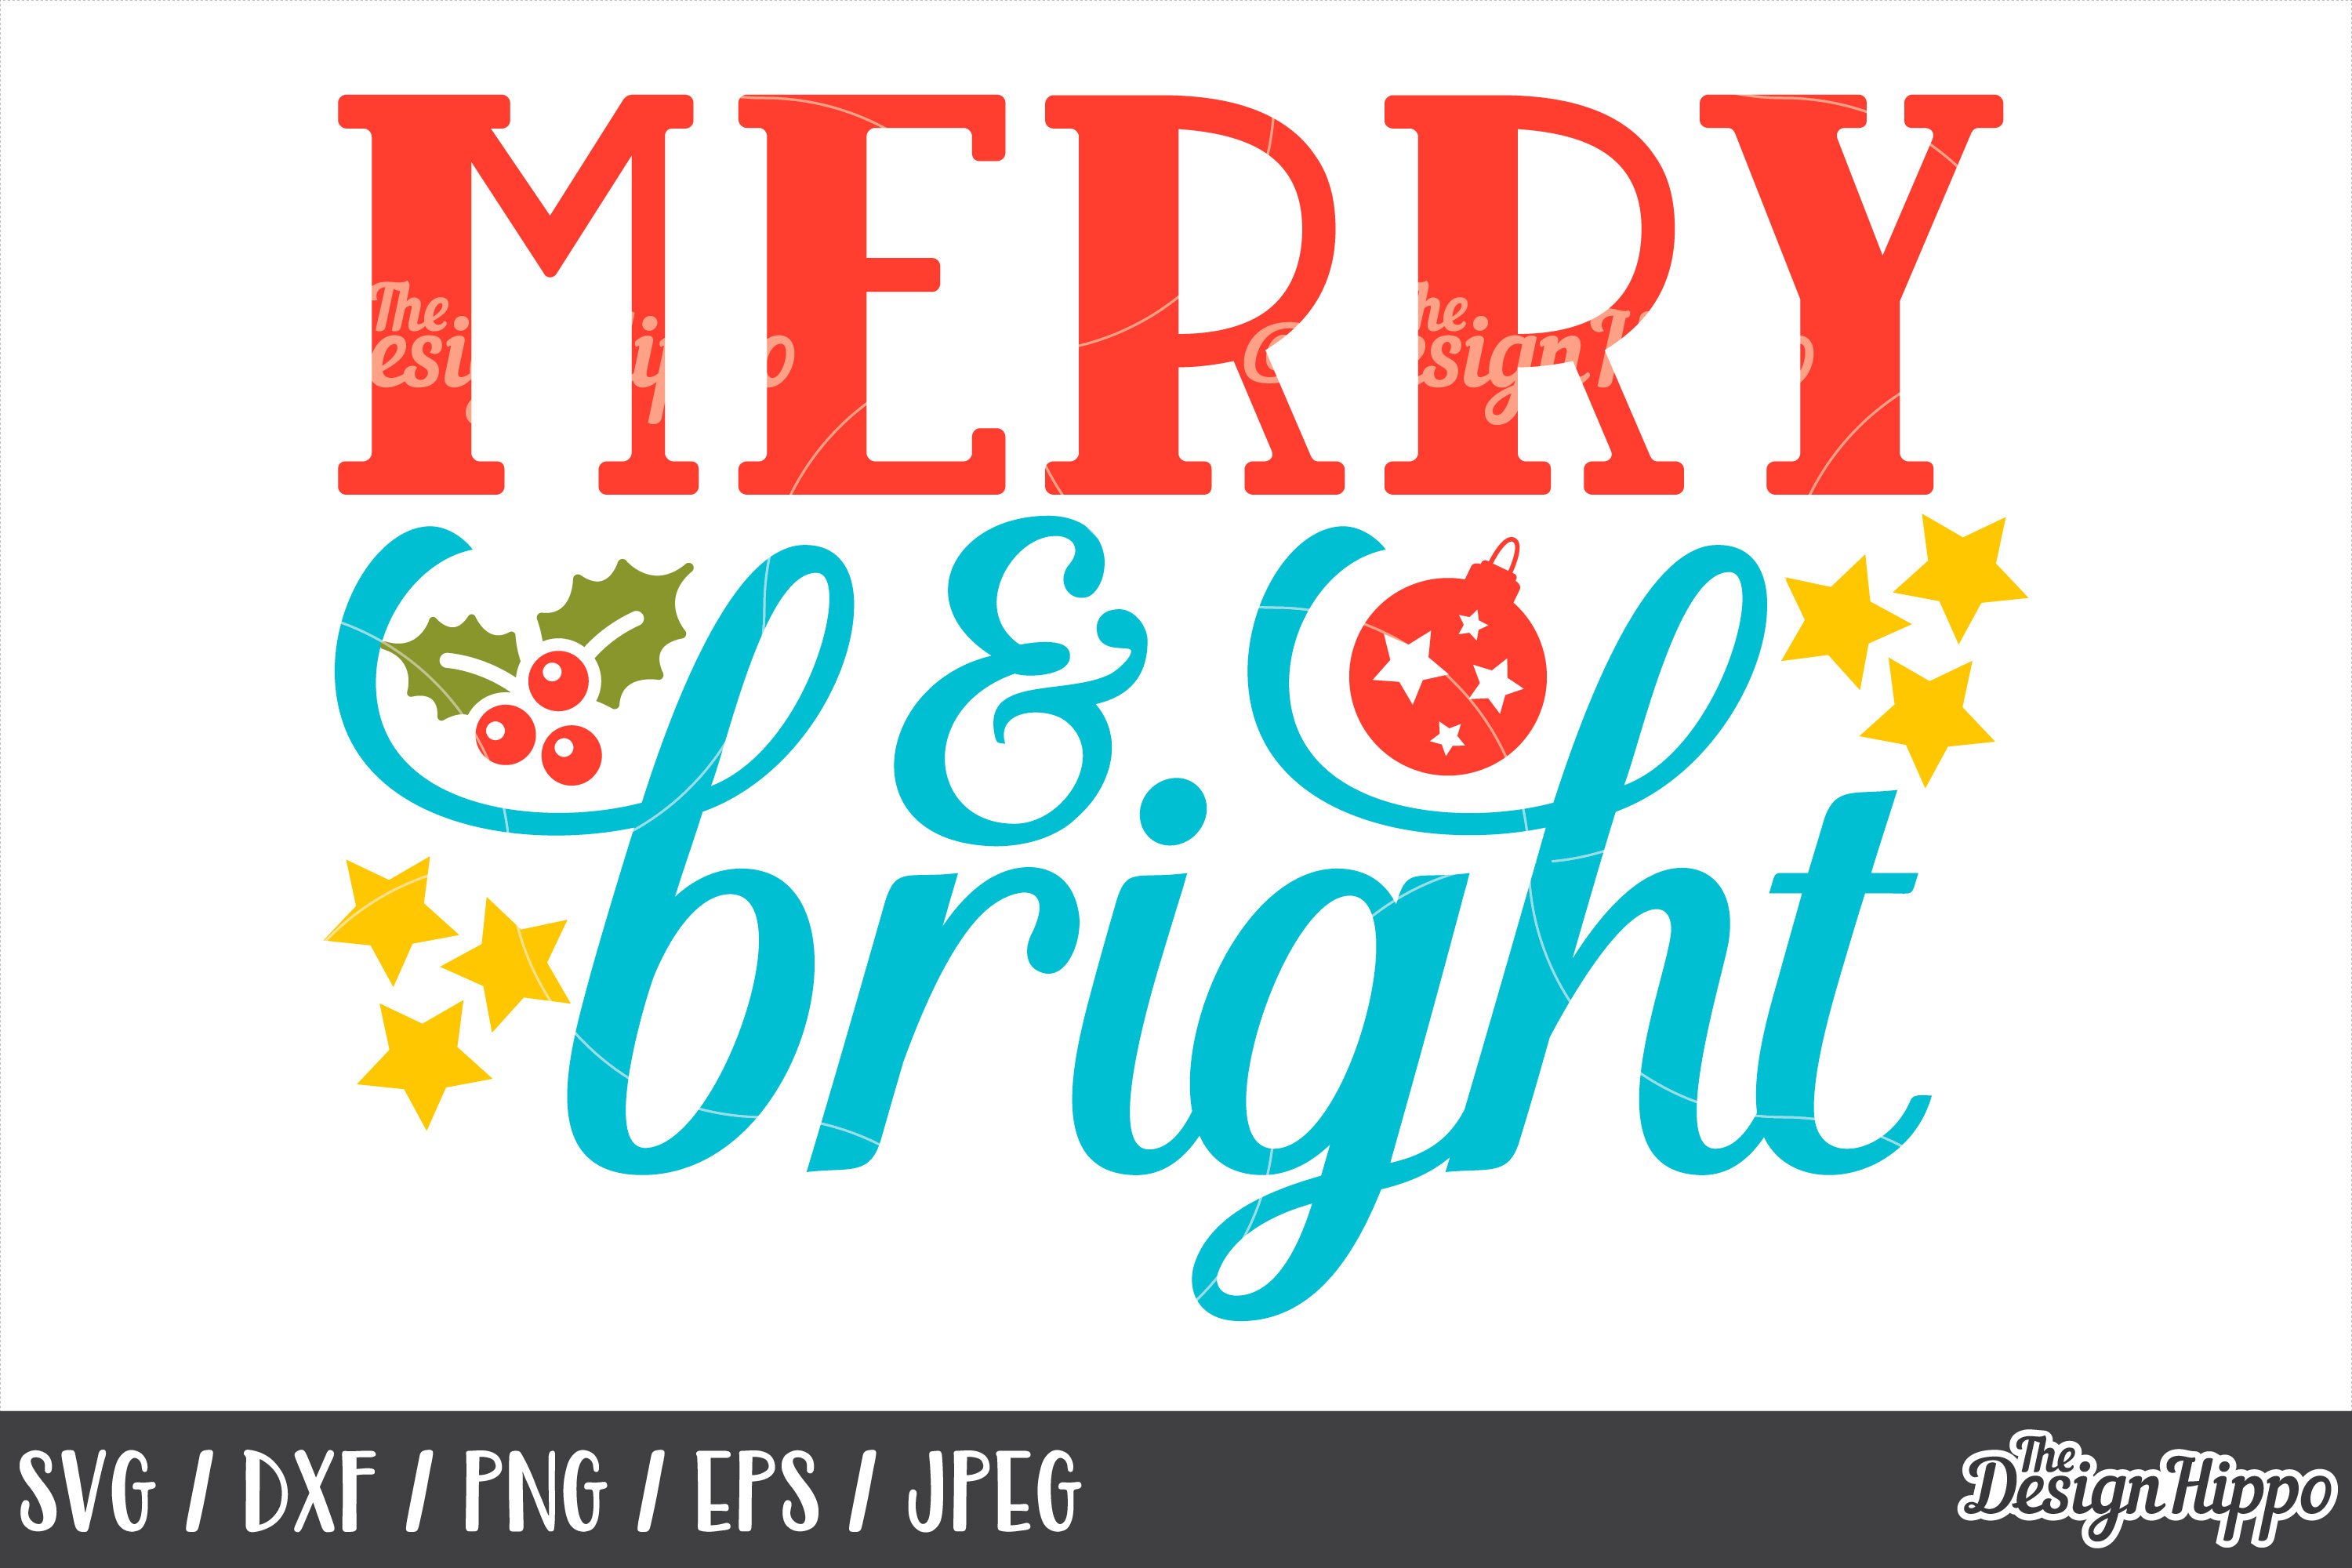 Christmas, Merry and Bright SVG, PNG, DXF, Cricut, Cut Files example image 1